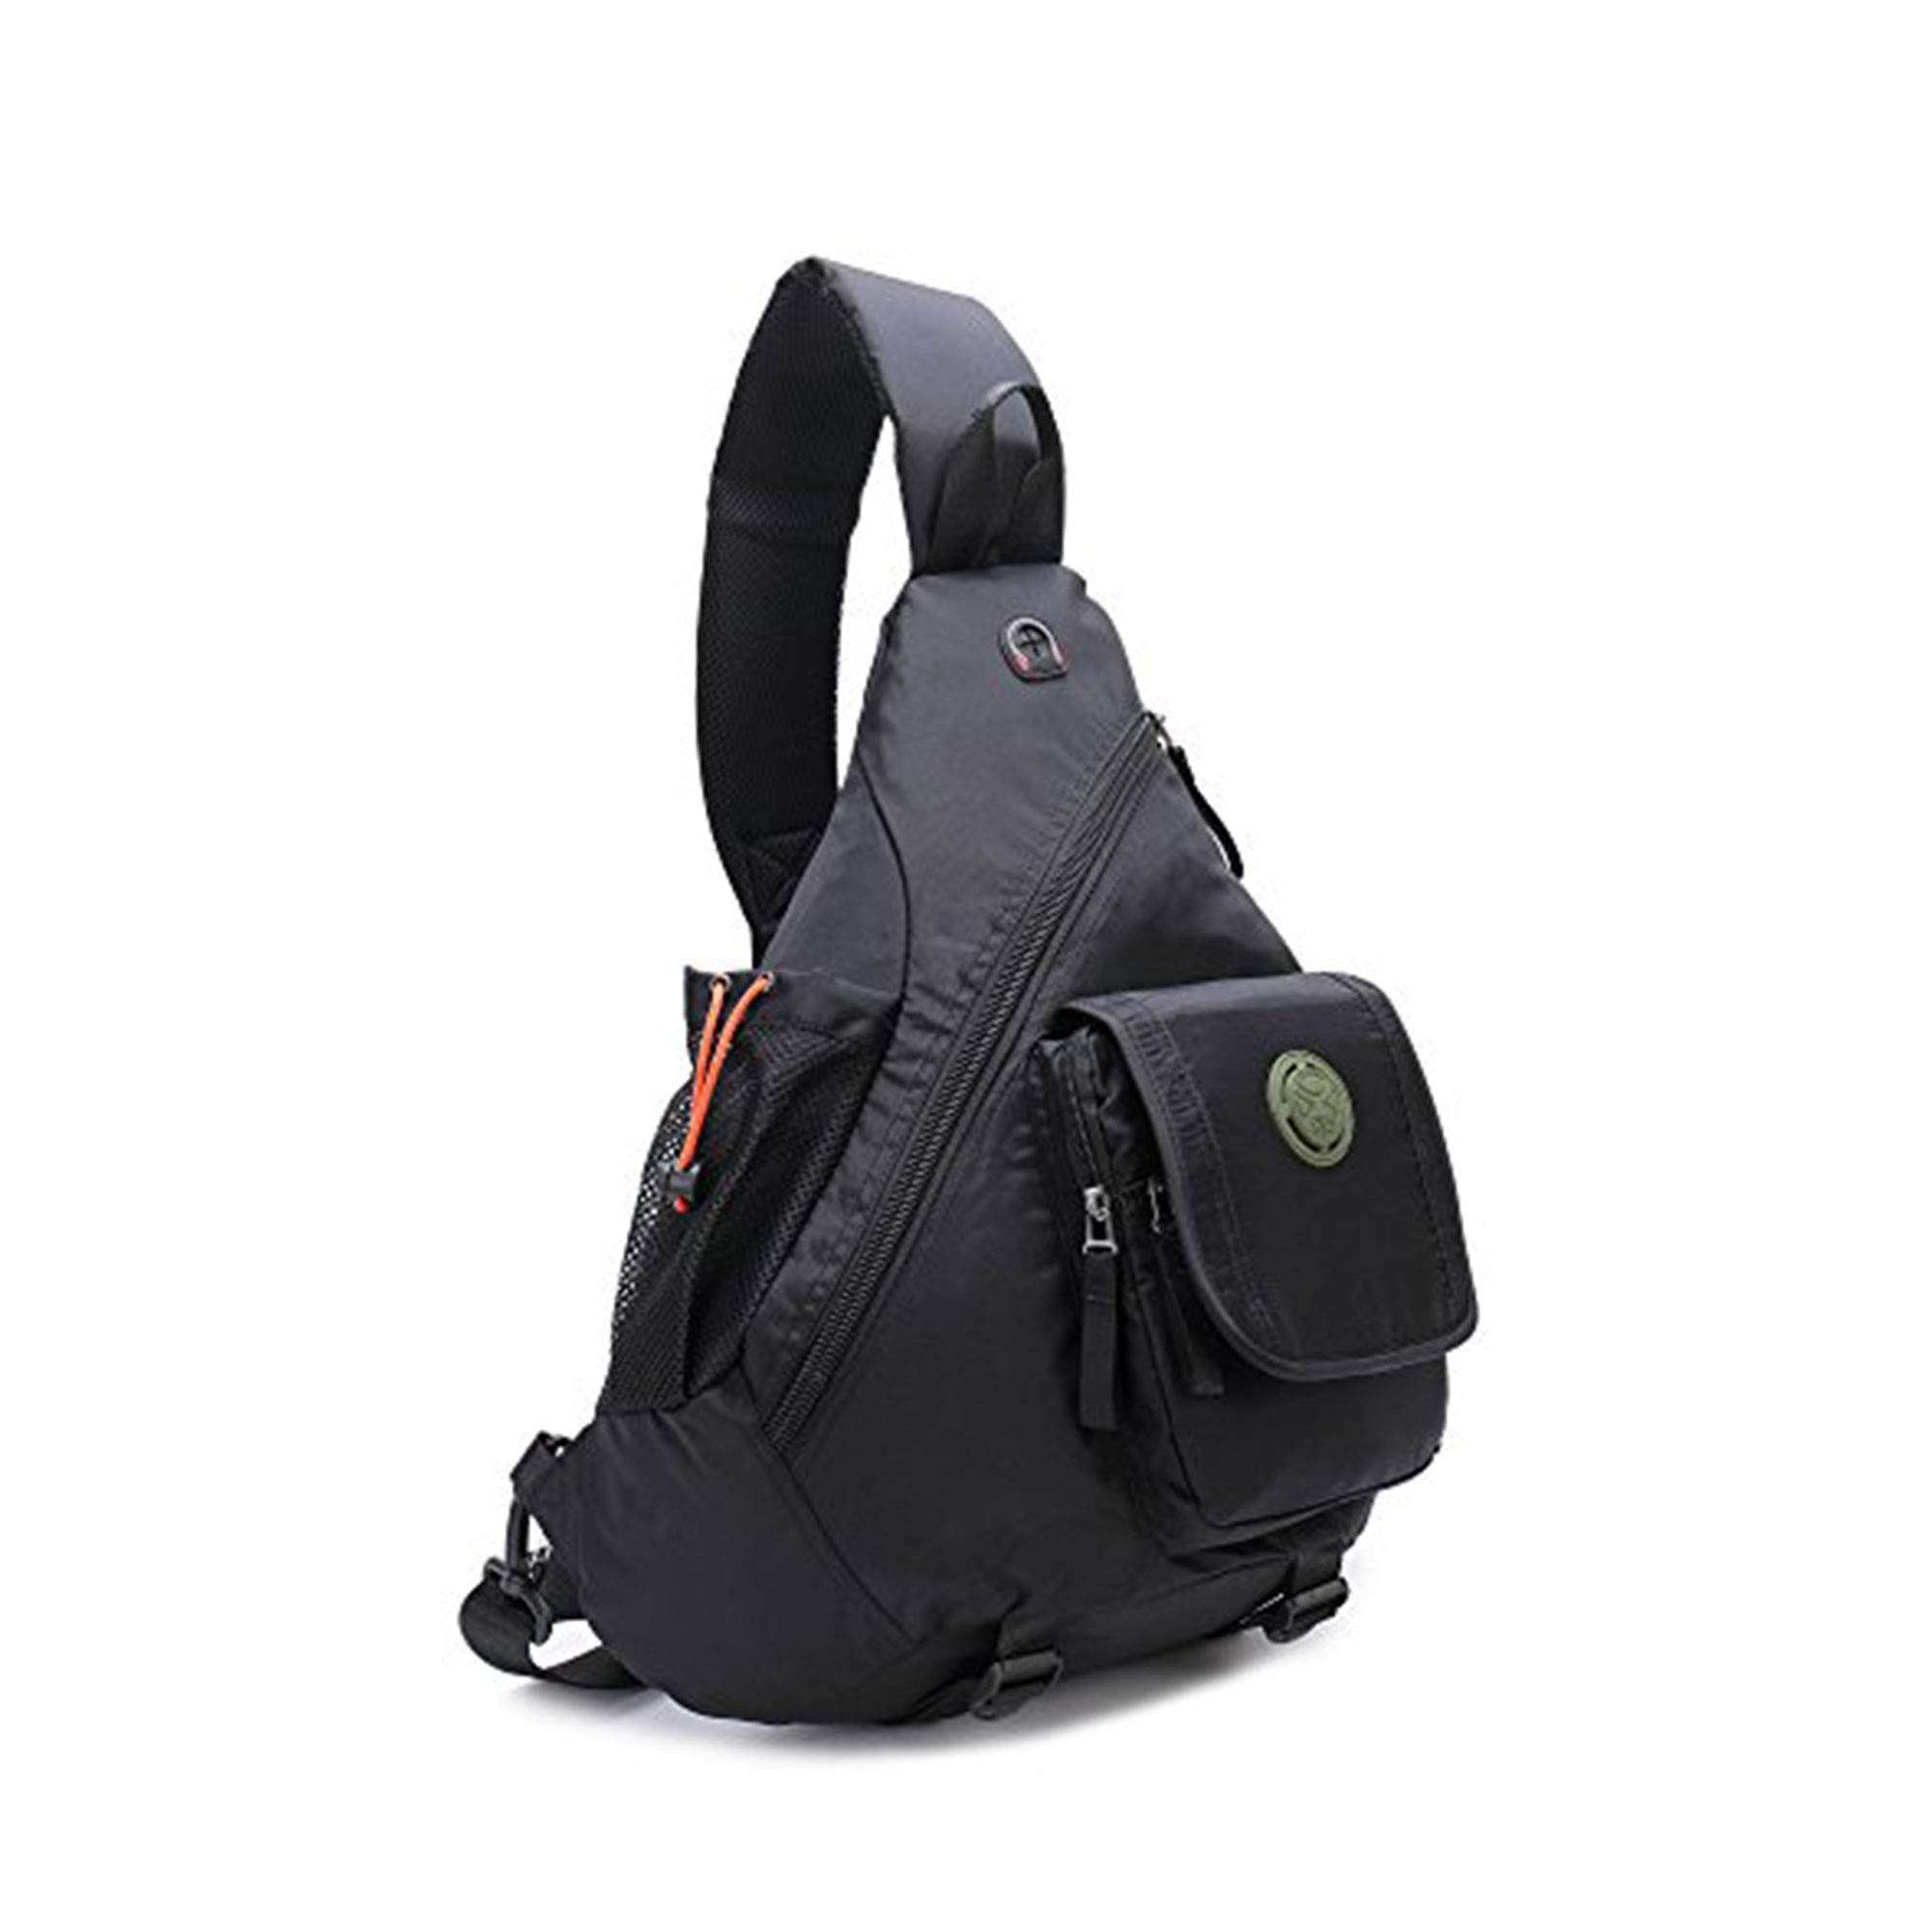 DDDH 14.1''Sling Bags Chest Pack Triangle Shoulder Crossbody Backpack for Outdoor Camping Hiking Man Women (Black)